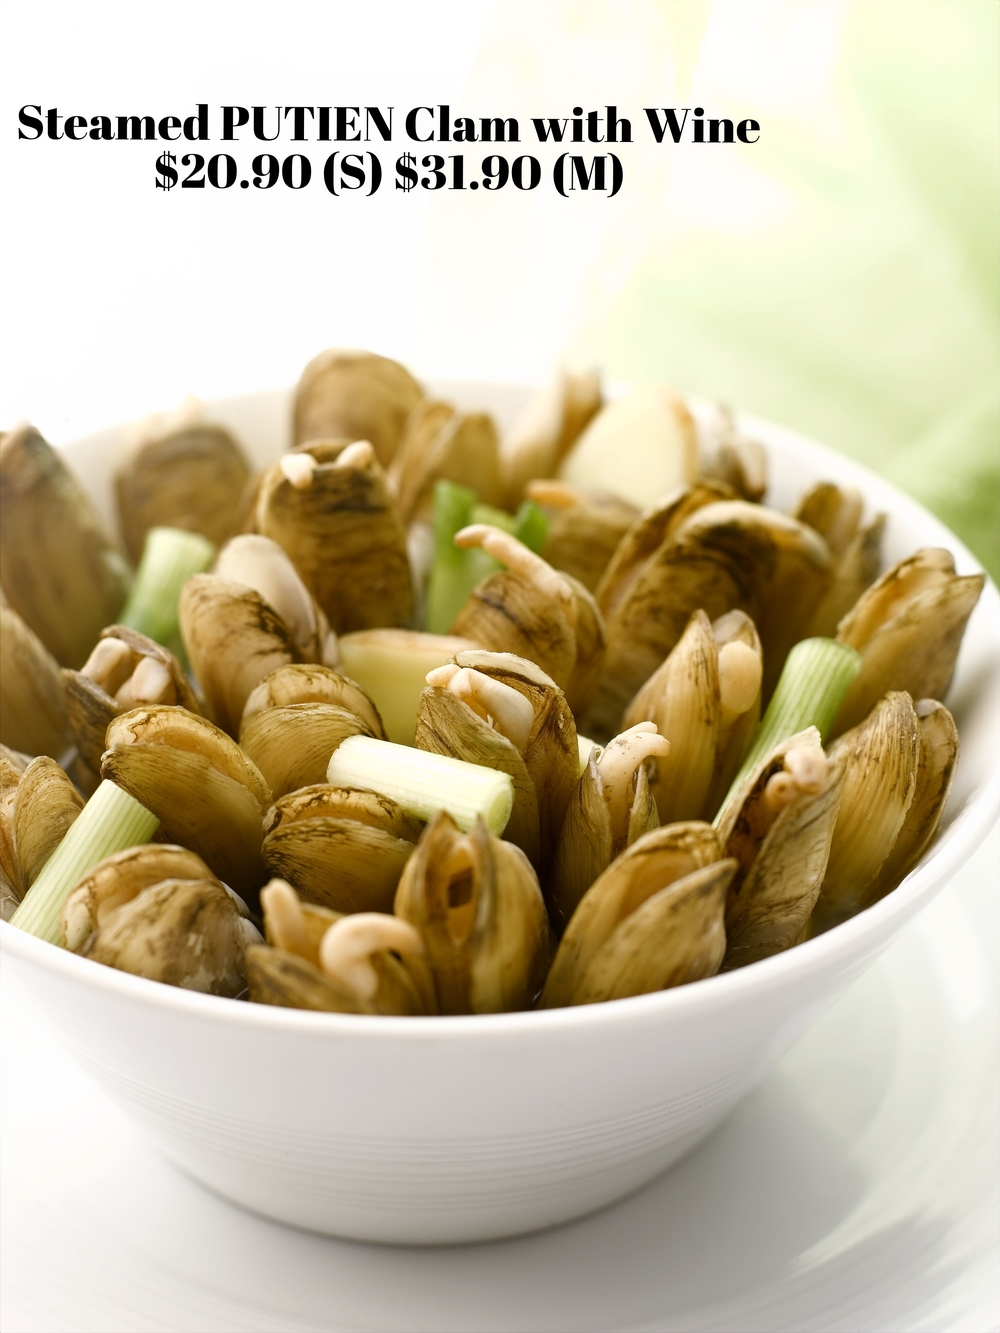 Clams are filled to the brim in a bowl and steamed upright with traditional Chinese wine – Huadiao.